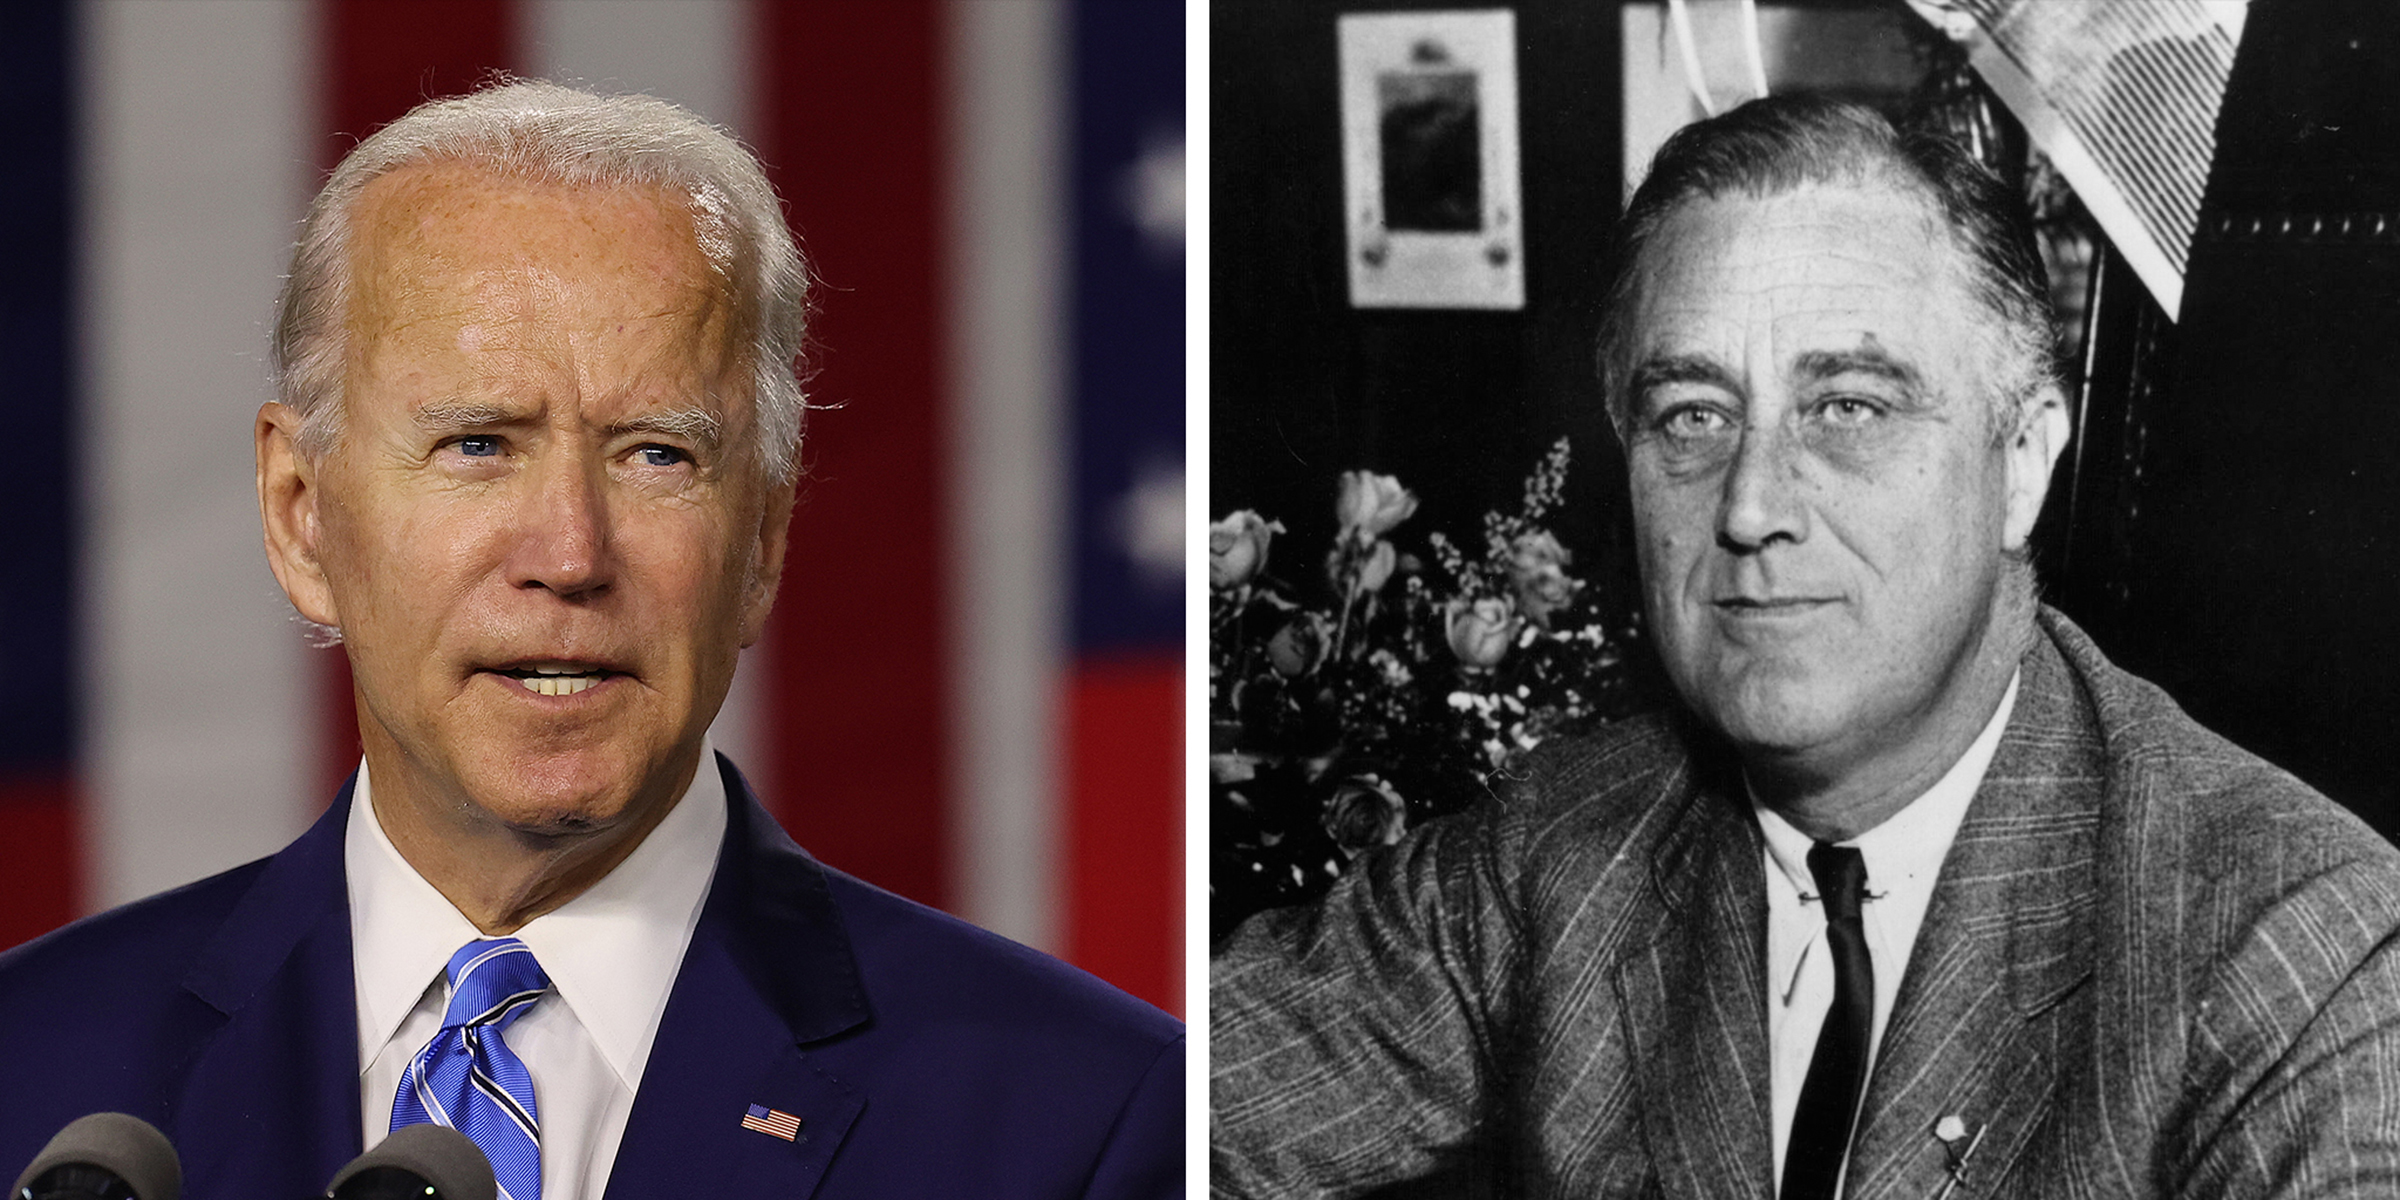 Democratic presidential candidate former Vice President Joe Biden, and 32nd President of the United States Franklin Delano Roosevelt.